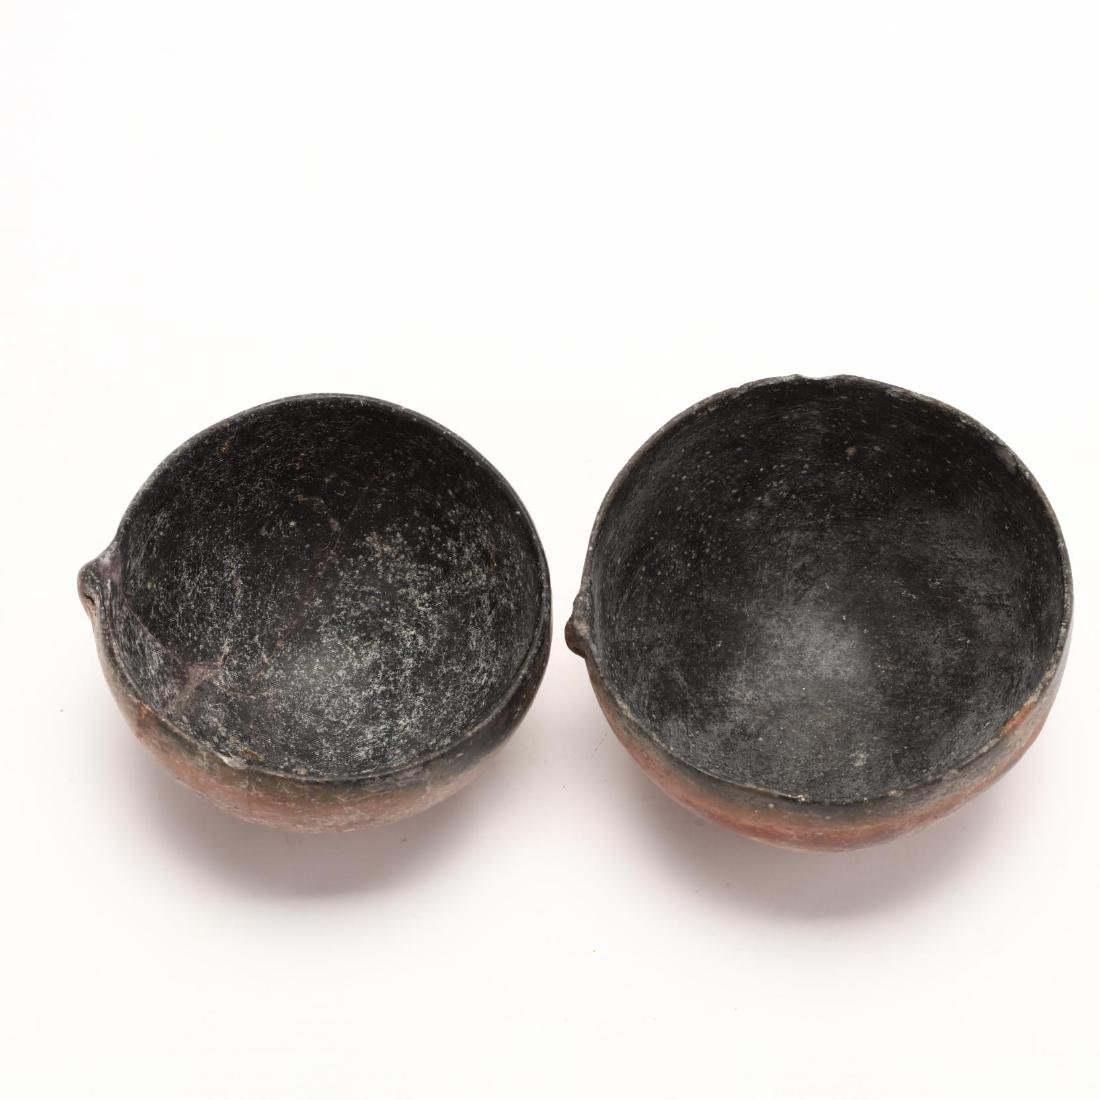 Two Cypriot Bronze Age Polished Red Ware Bowls - 2